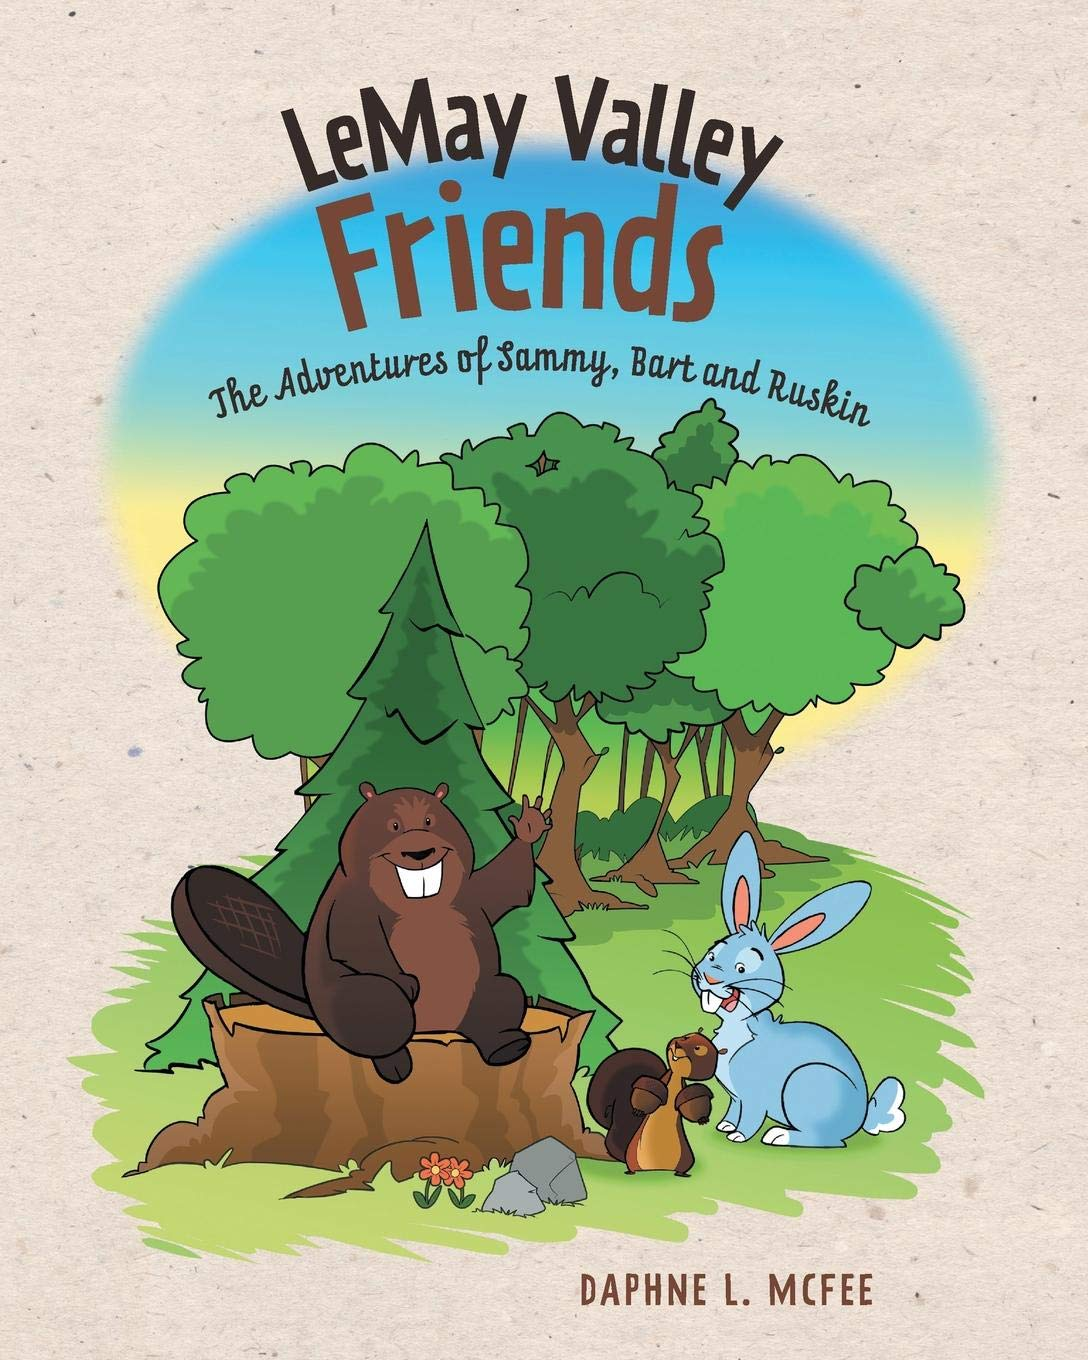 Download LeMay Valley Friends: The Adventures of Sammy, Bart and Ruskin PDF